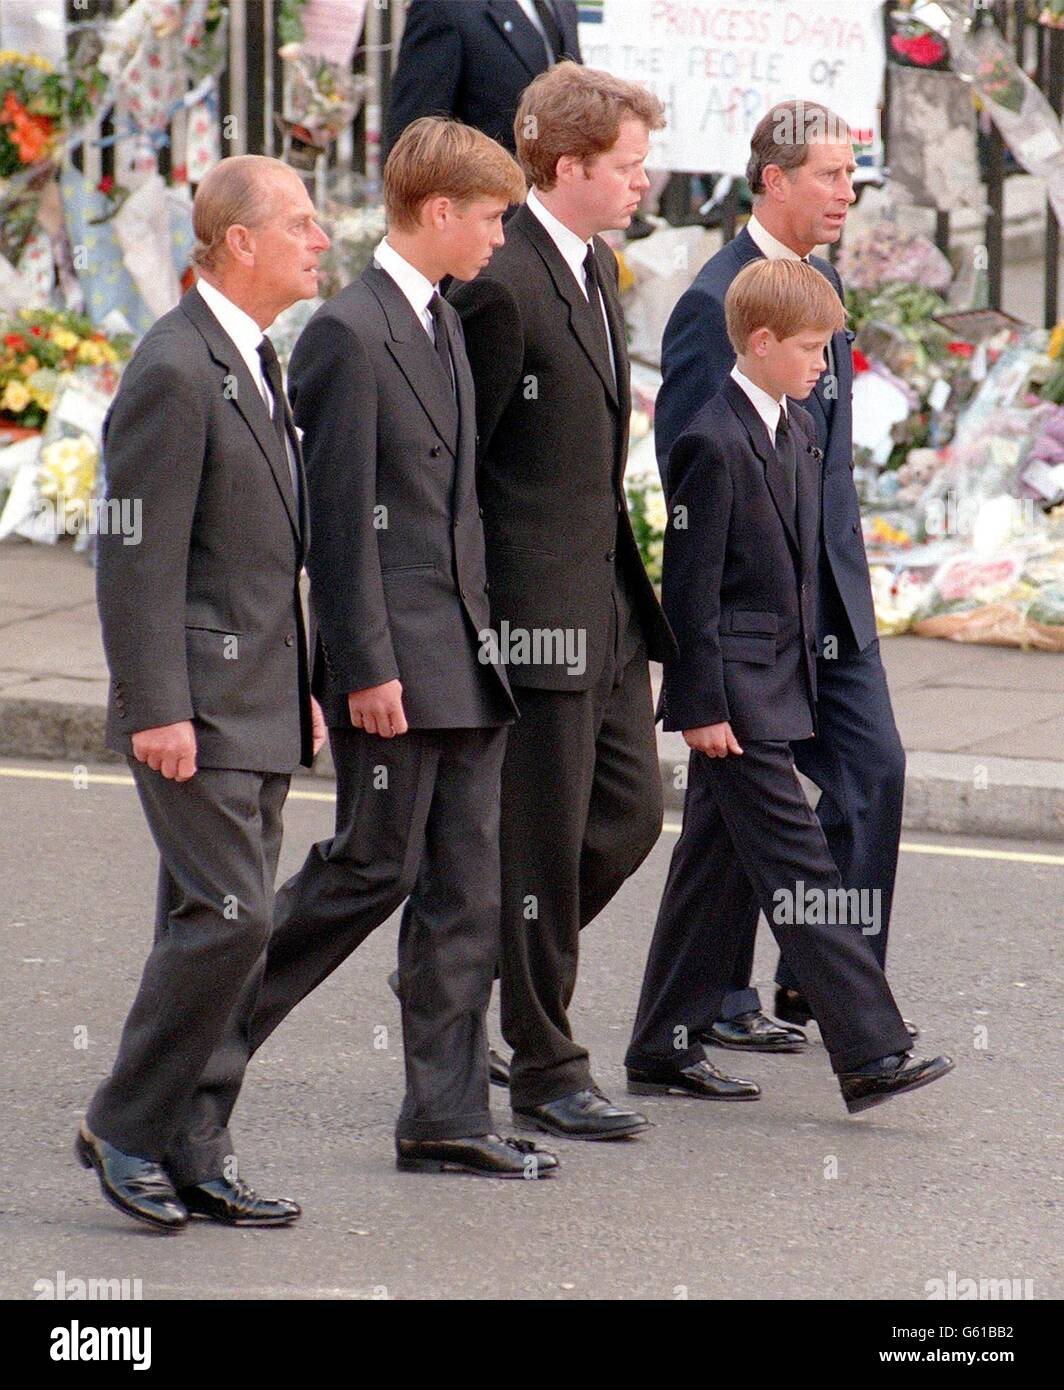 Royalty Funeral Of Diana Princess Of Wales London Stock Photo Alamy